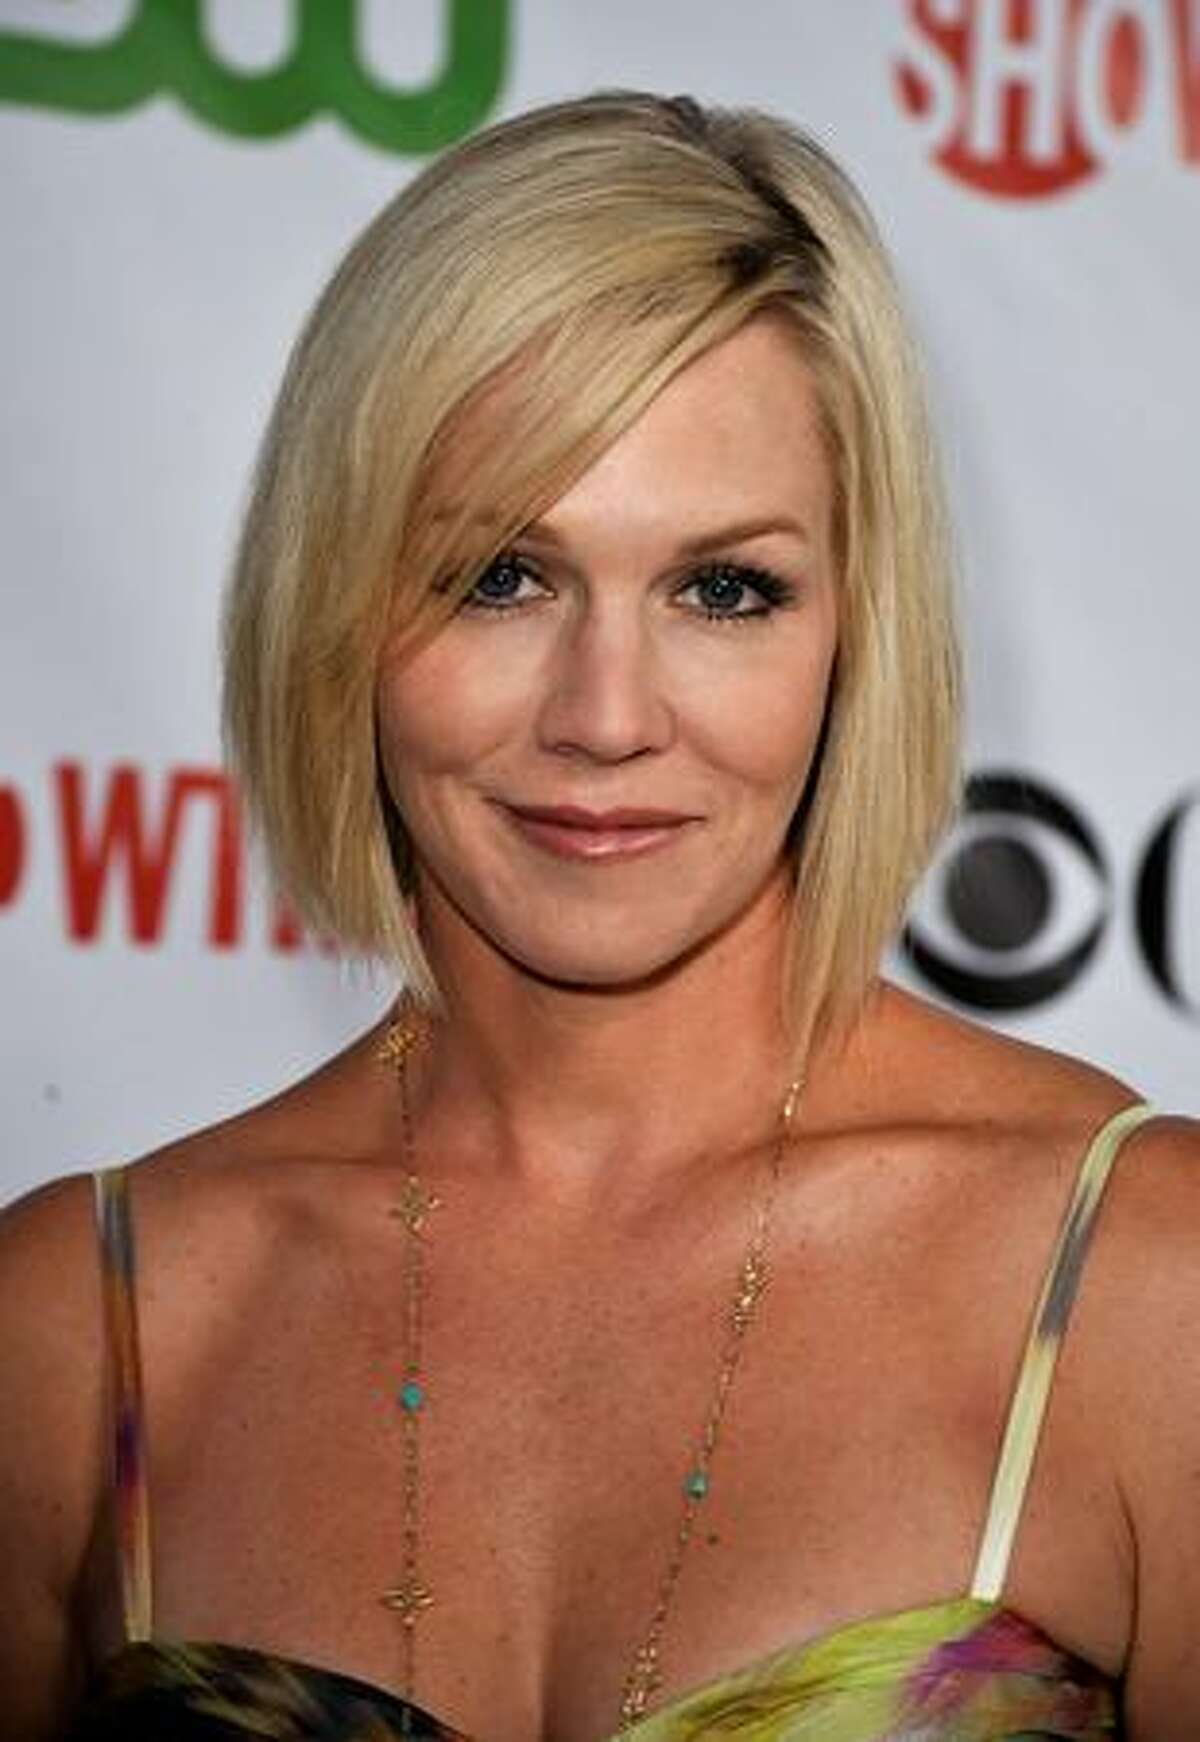 Actress Jennie Garth arrives at the CBS, CW, CBS Television Studios & Showtime TCA party held at the Huntington Library in Pasadena, California.